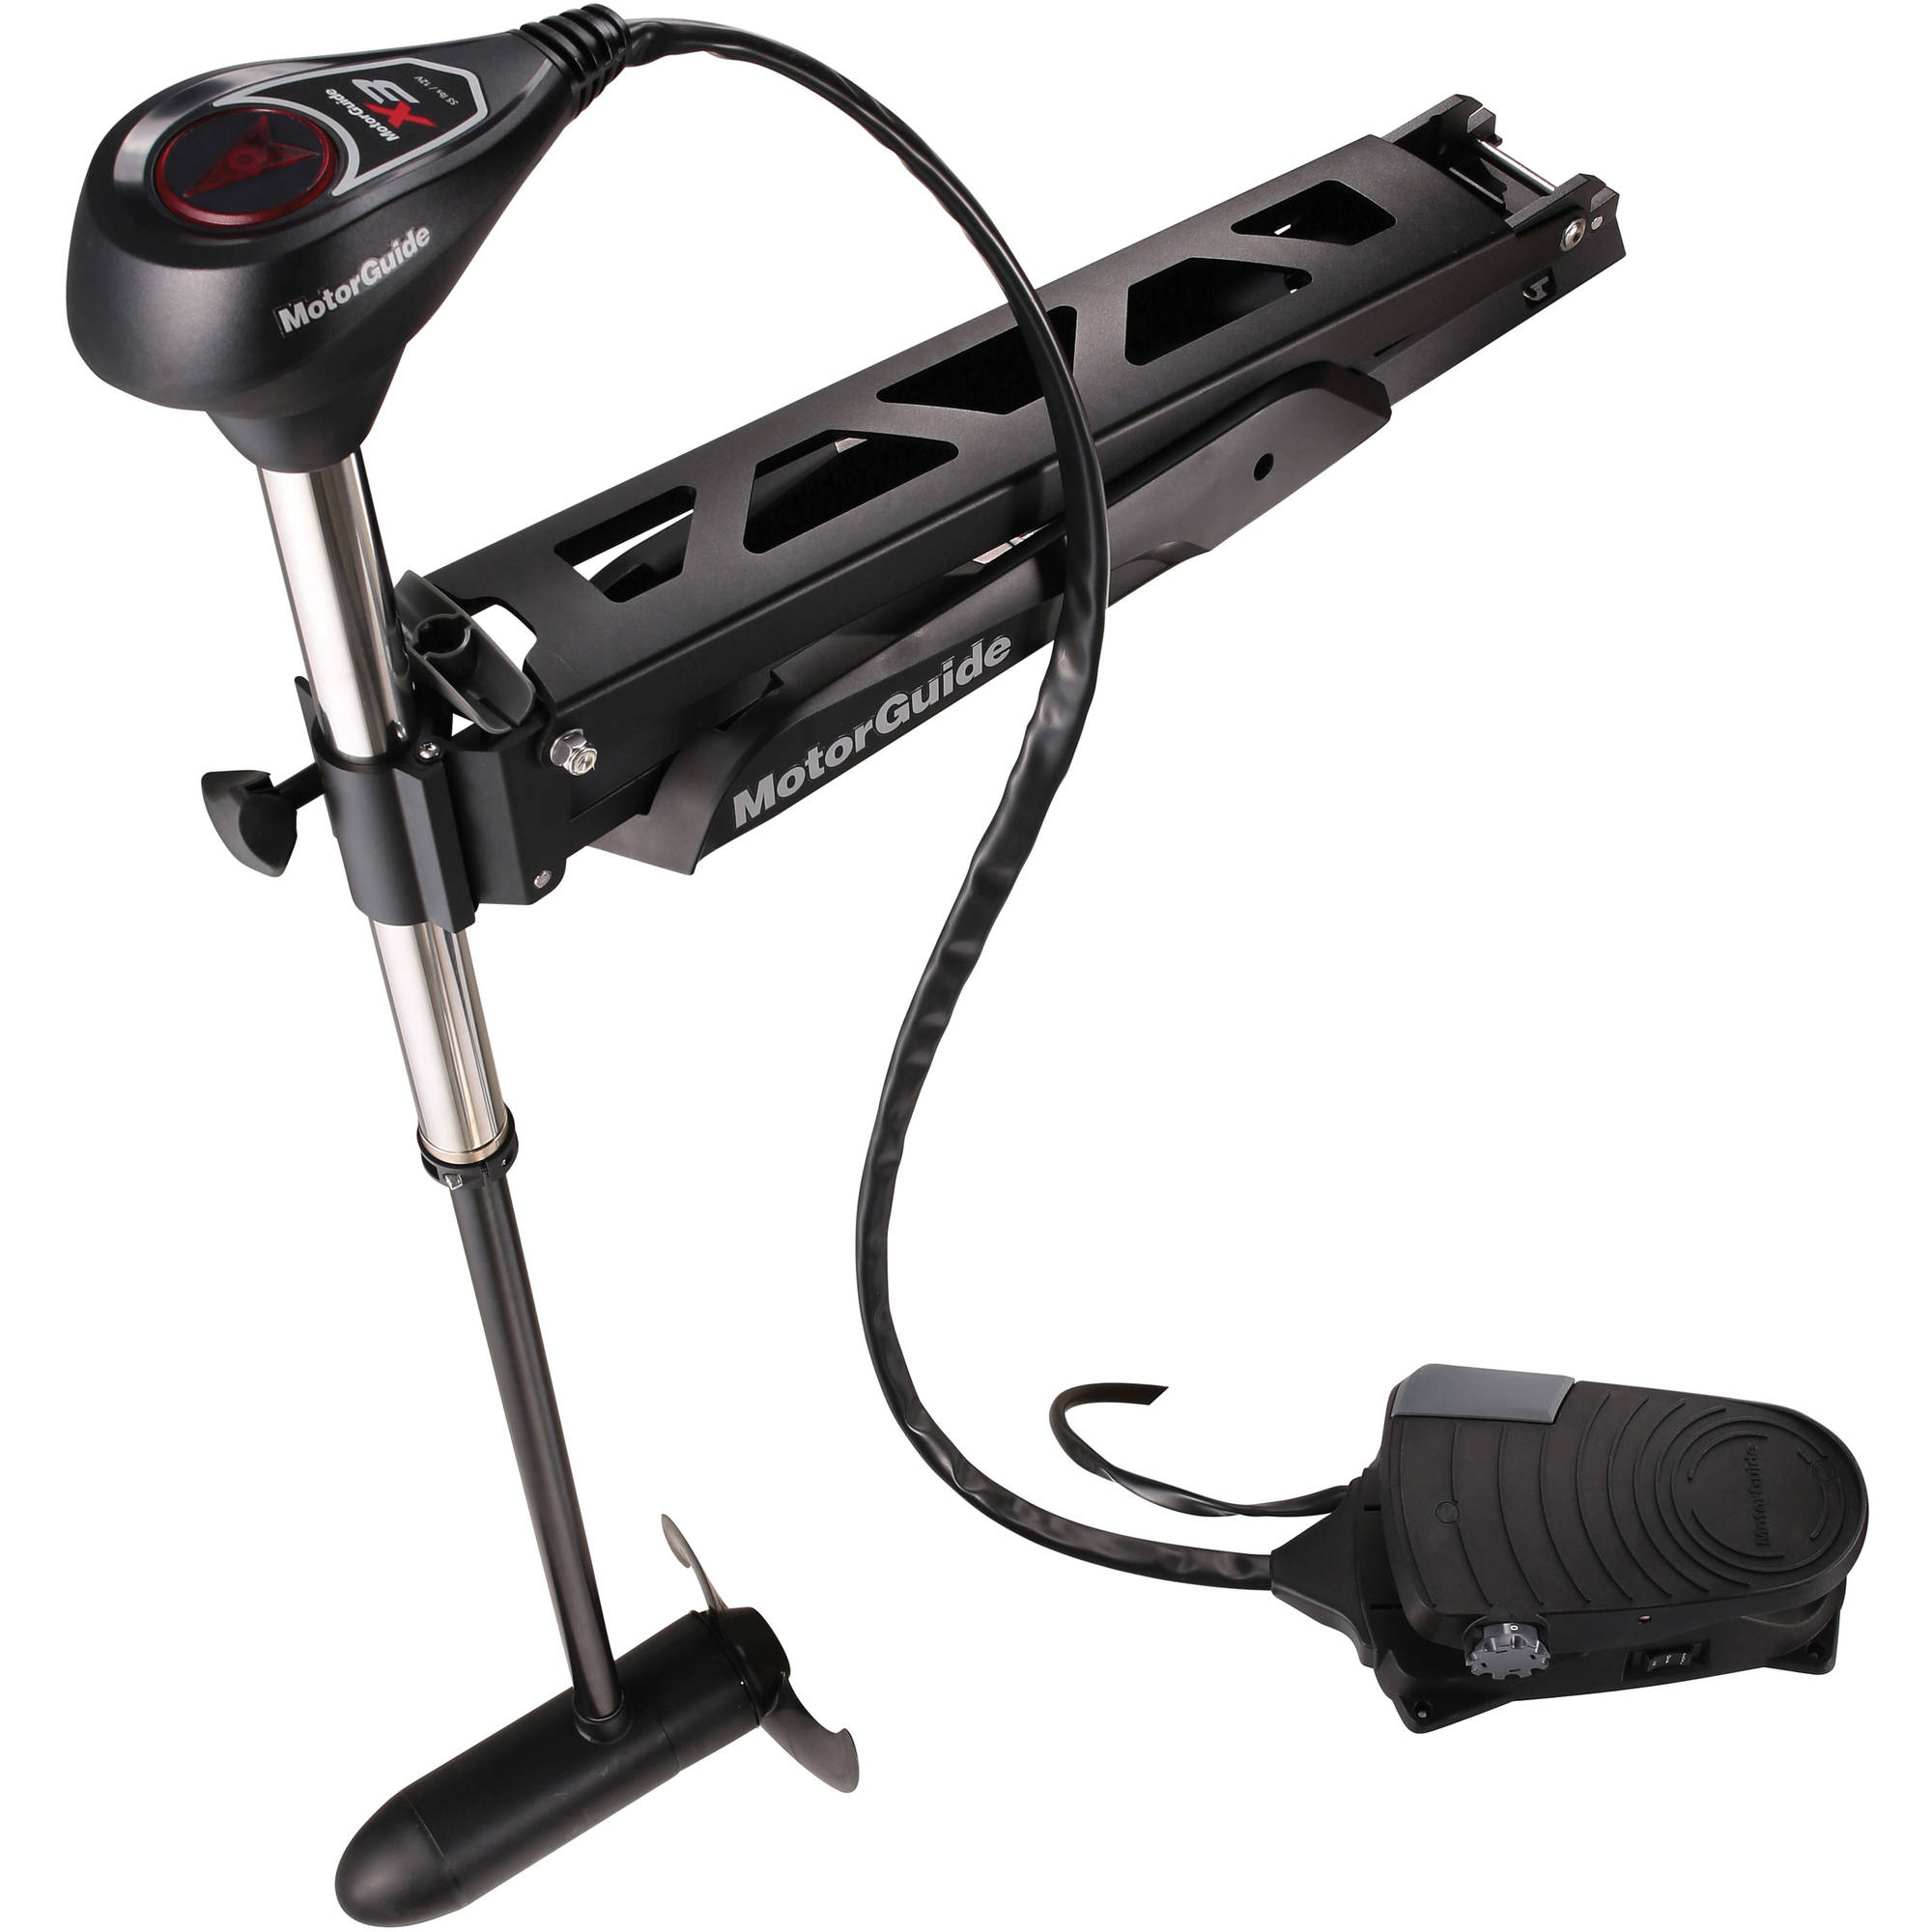 """MotorGuide X3 940200180 24V Foot-Control Bow Mount Freshwater Digital Variable Speed Trolling Motor, 45"""" Shaft, 70... by attwood"""